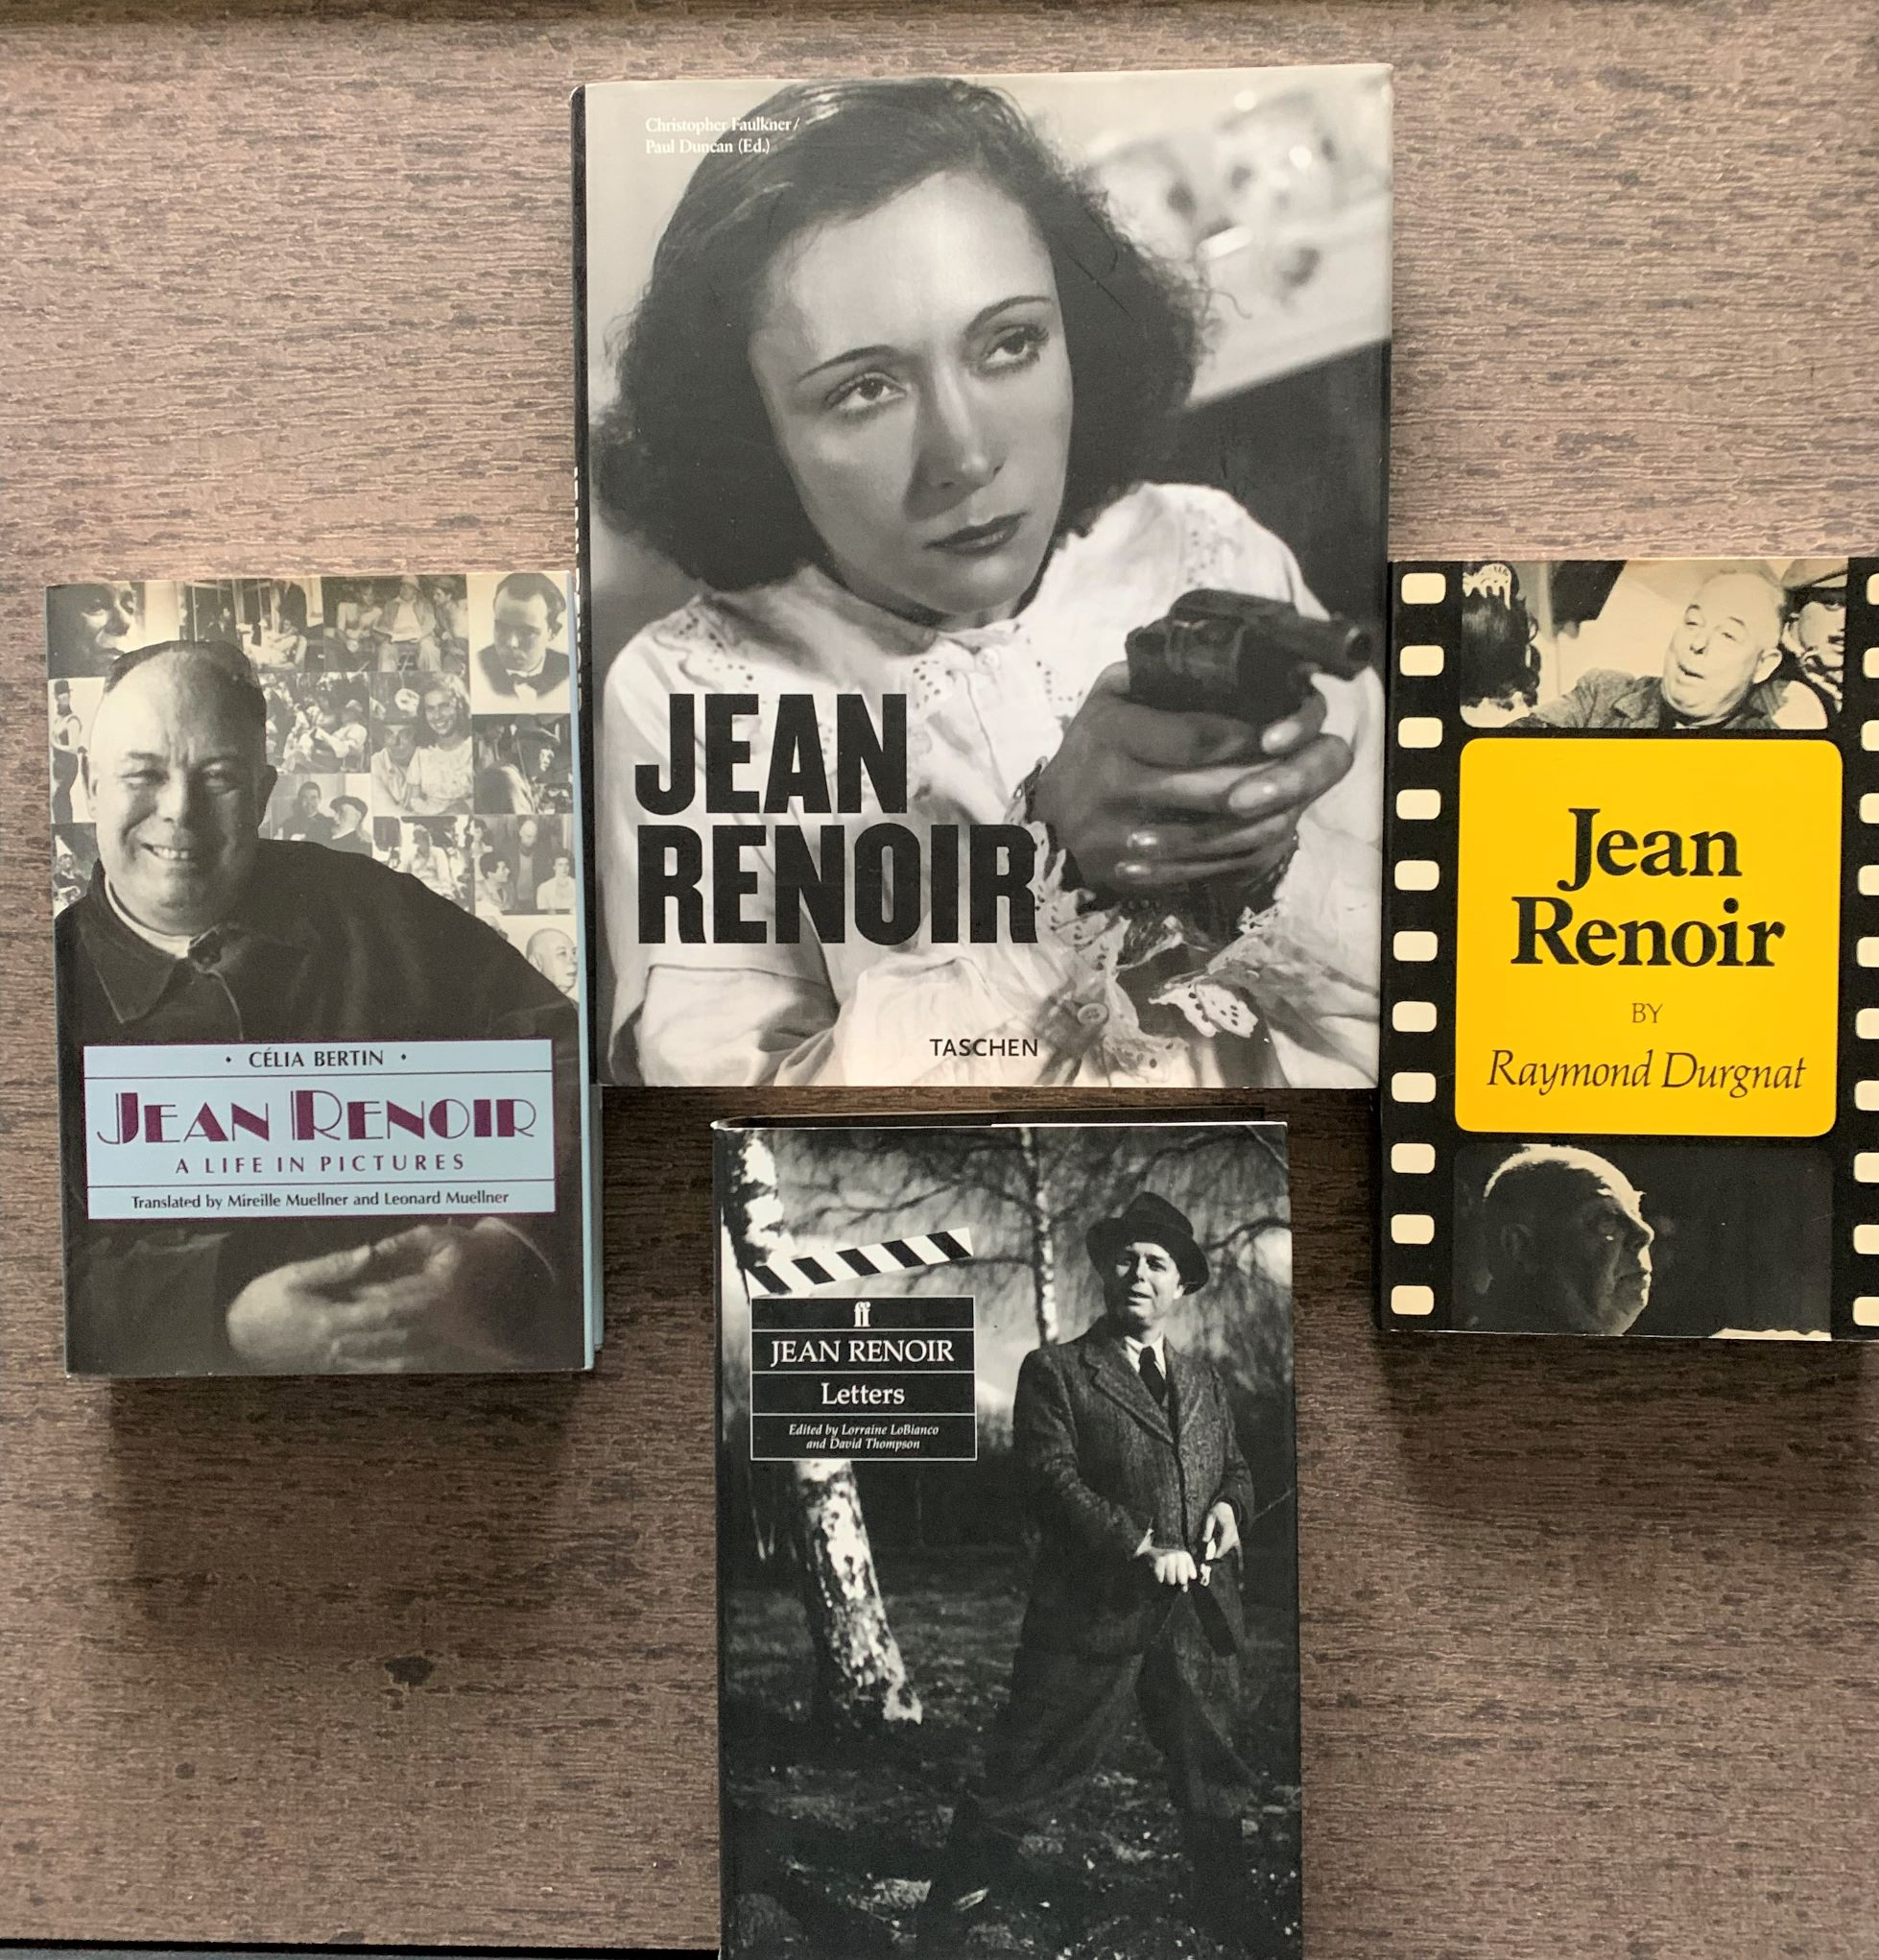 Image for [4 Titles] Jean Renoir; Jean Renoir, A Life in Pictures; Jean Renoir, Letters; Jean Renoir, A Conversation with His Films 1894-1979.